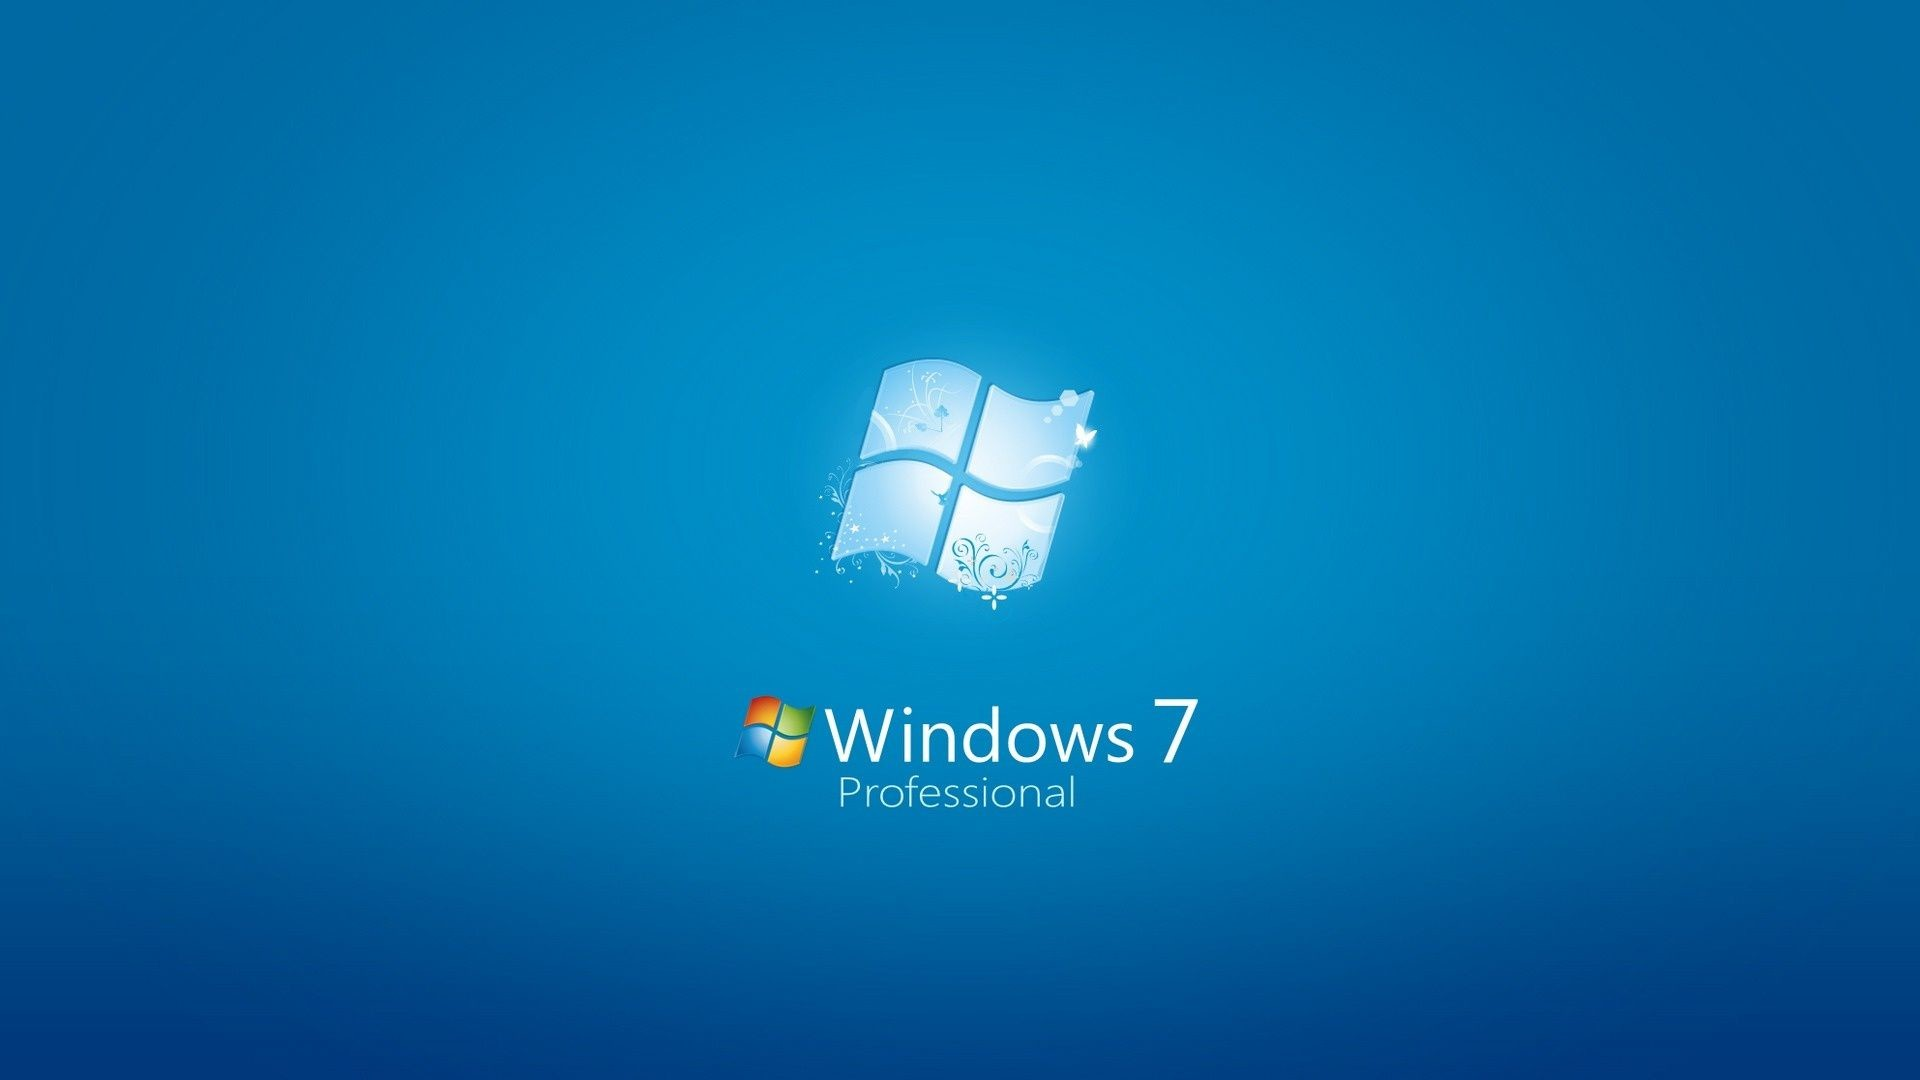 Hd wallpapers for windows 7 ultimate